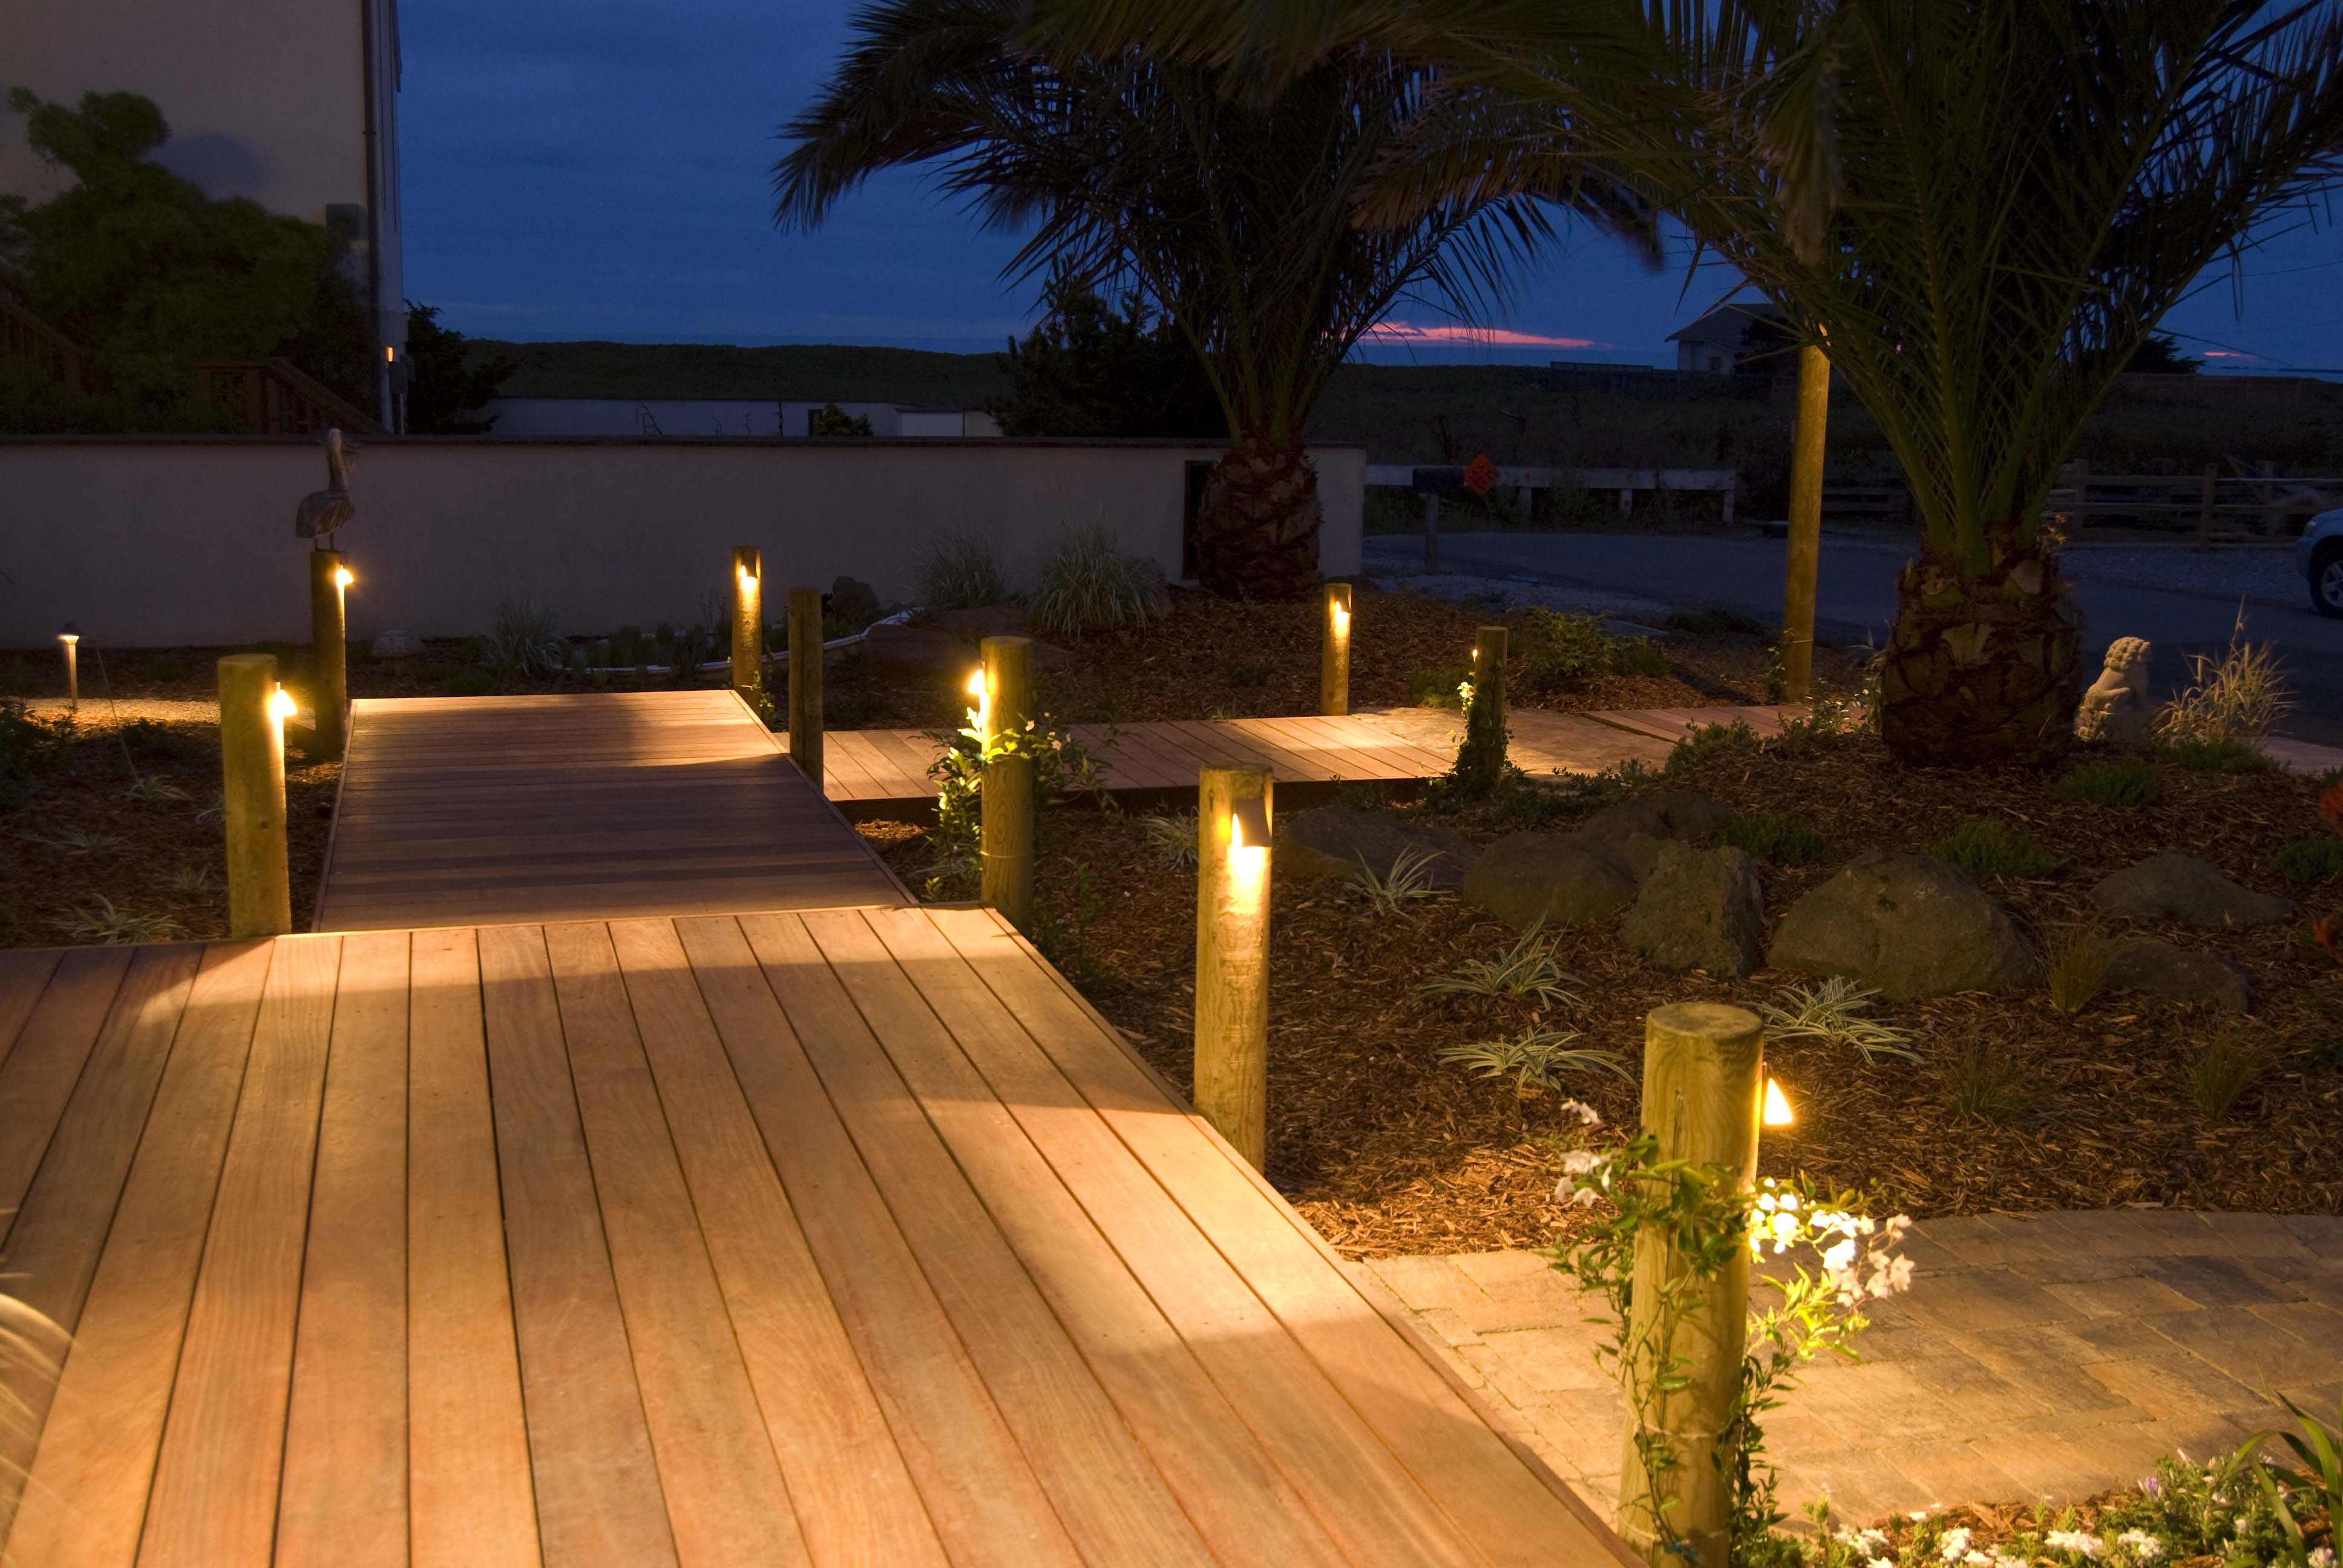 Outdoor decking and lighting